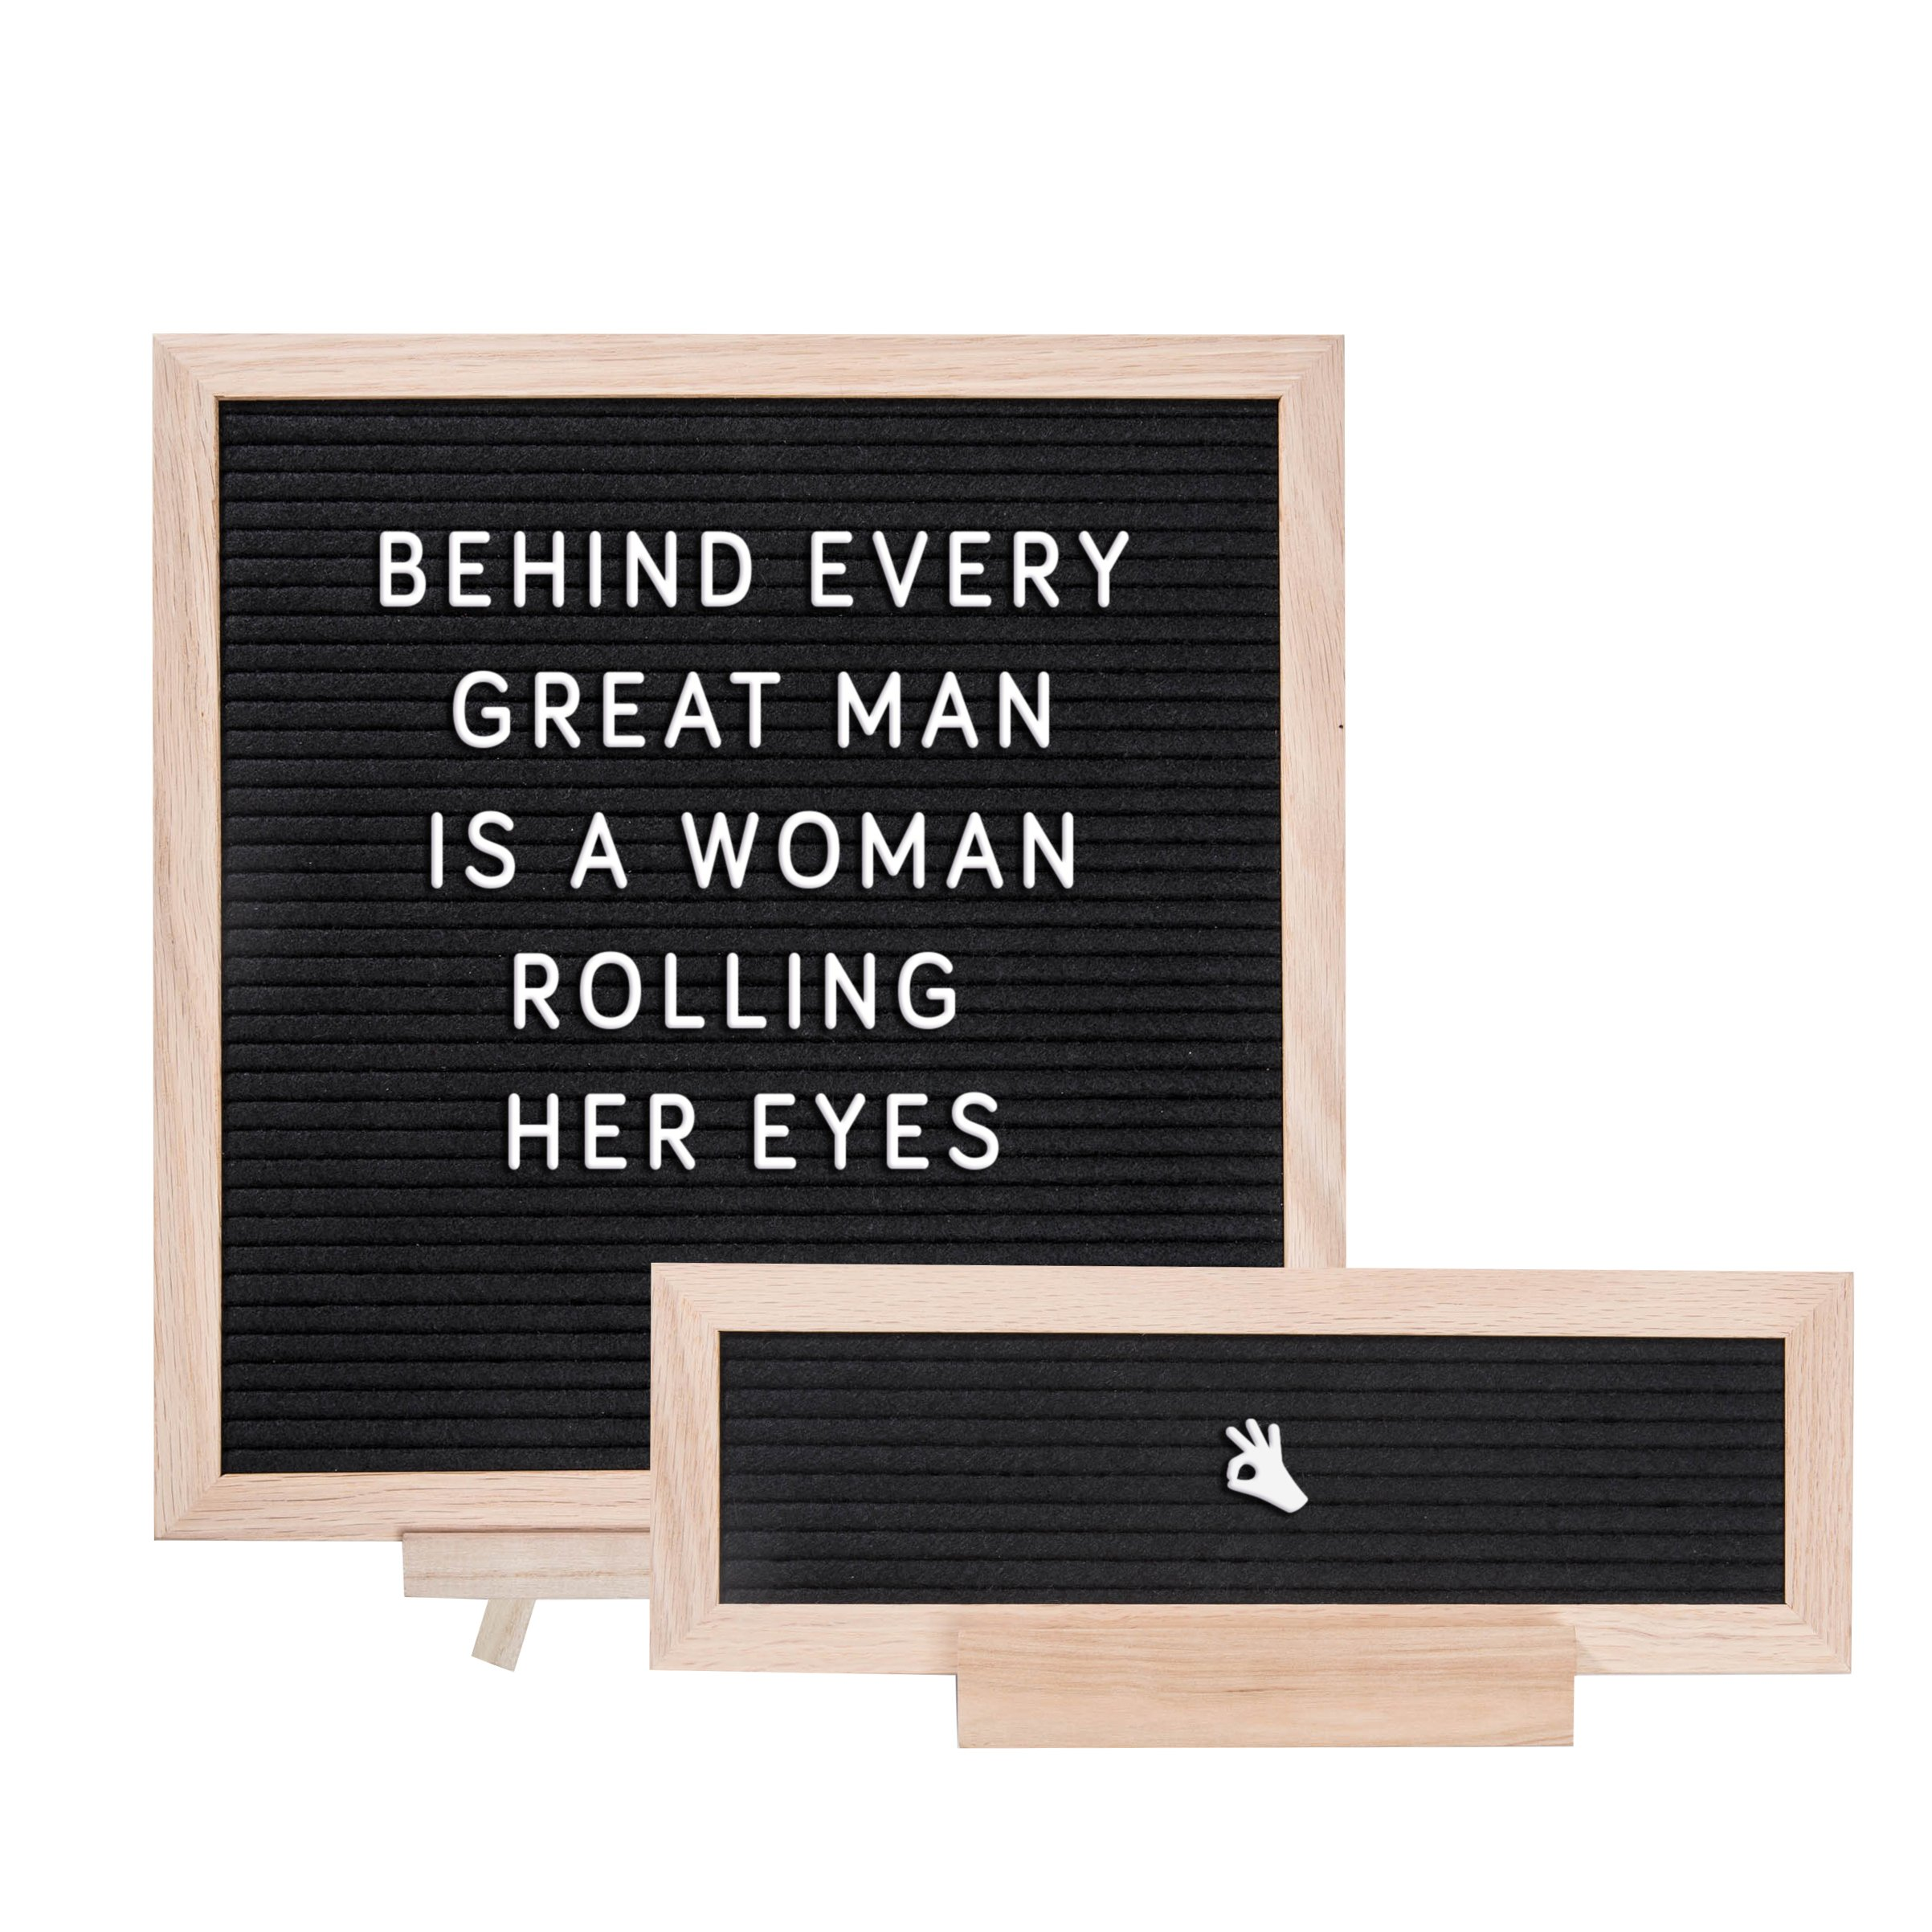 """ETHONS Felt Letter Board Super Pack - 2 Quality Letter Boards 12""""x12"""" & 12""""x4"""" - Personalize with 640 Characters in White & Gold - Gift-Ready Display Boards - Includes 2 Wood Stands and 2 Canvas Bags by ETHONS (Image #7)"""